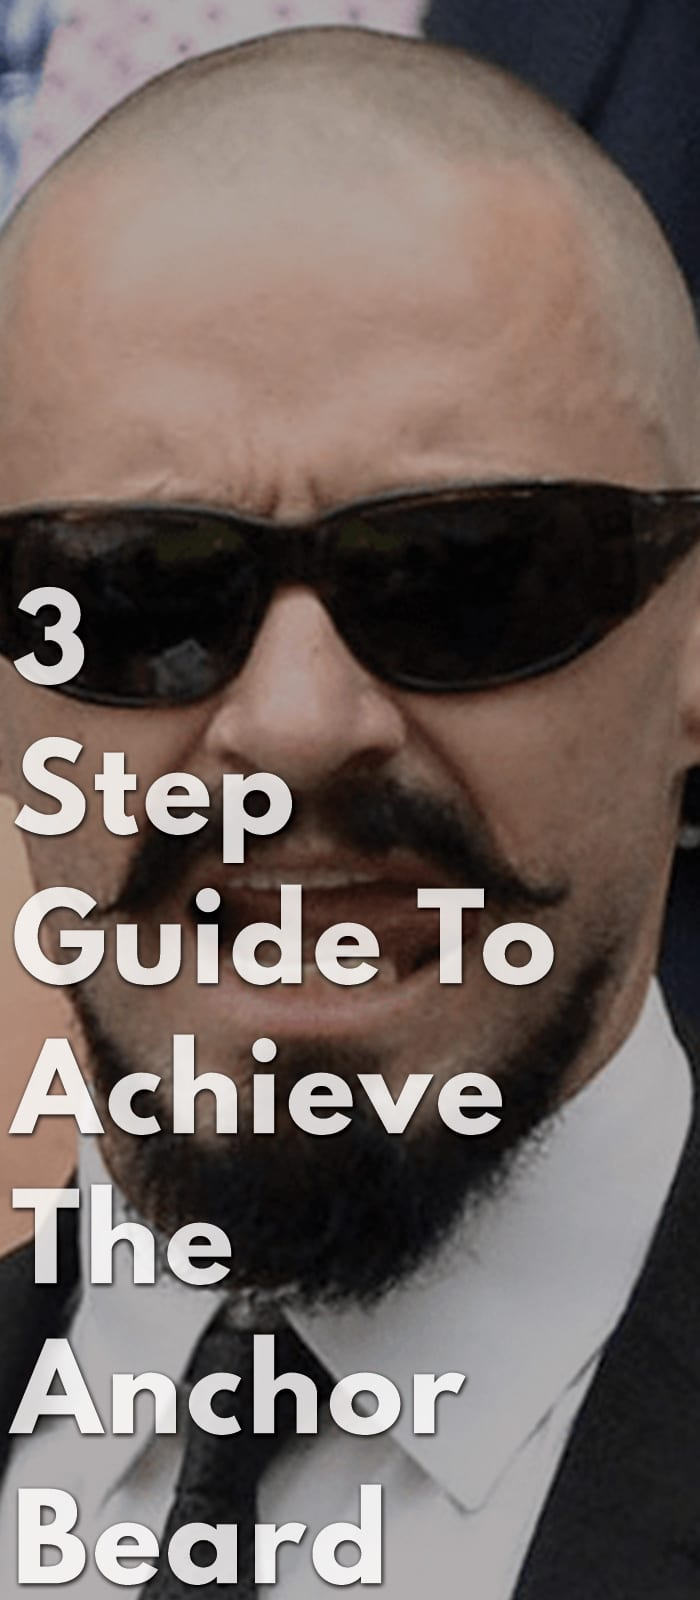 3-Step-Guide-To-Achieve-The-Anchor-Beard